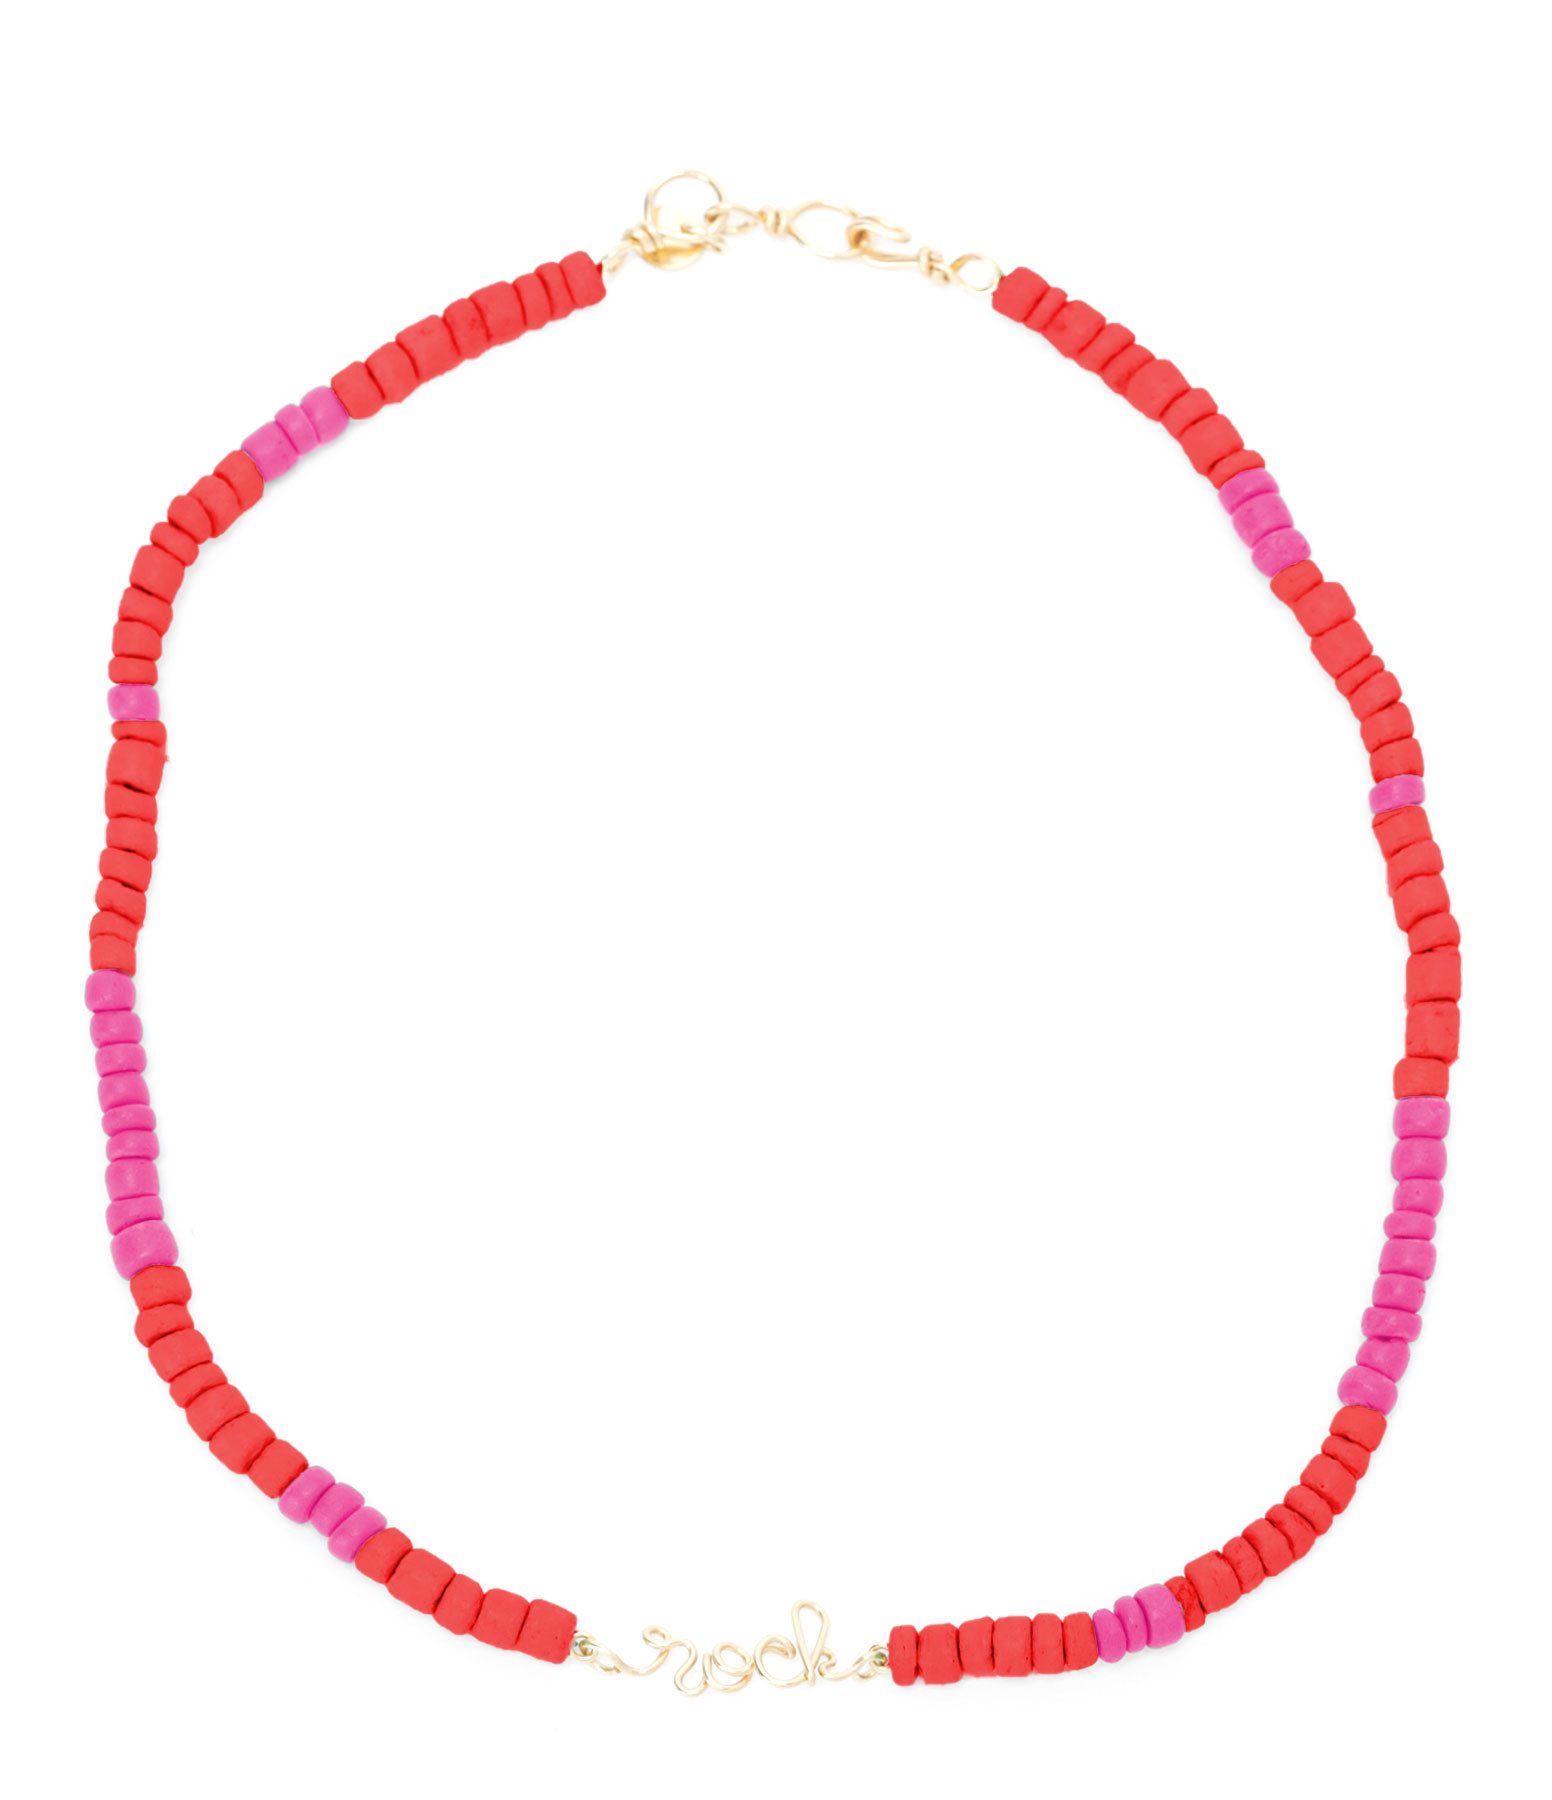 ATELIER PAULIN - Collier Medina Rock Corail Rose Gold Filled, Collection Marrakech